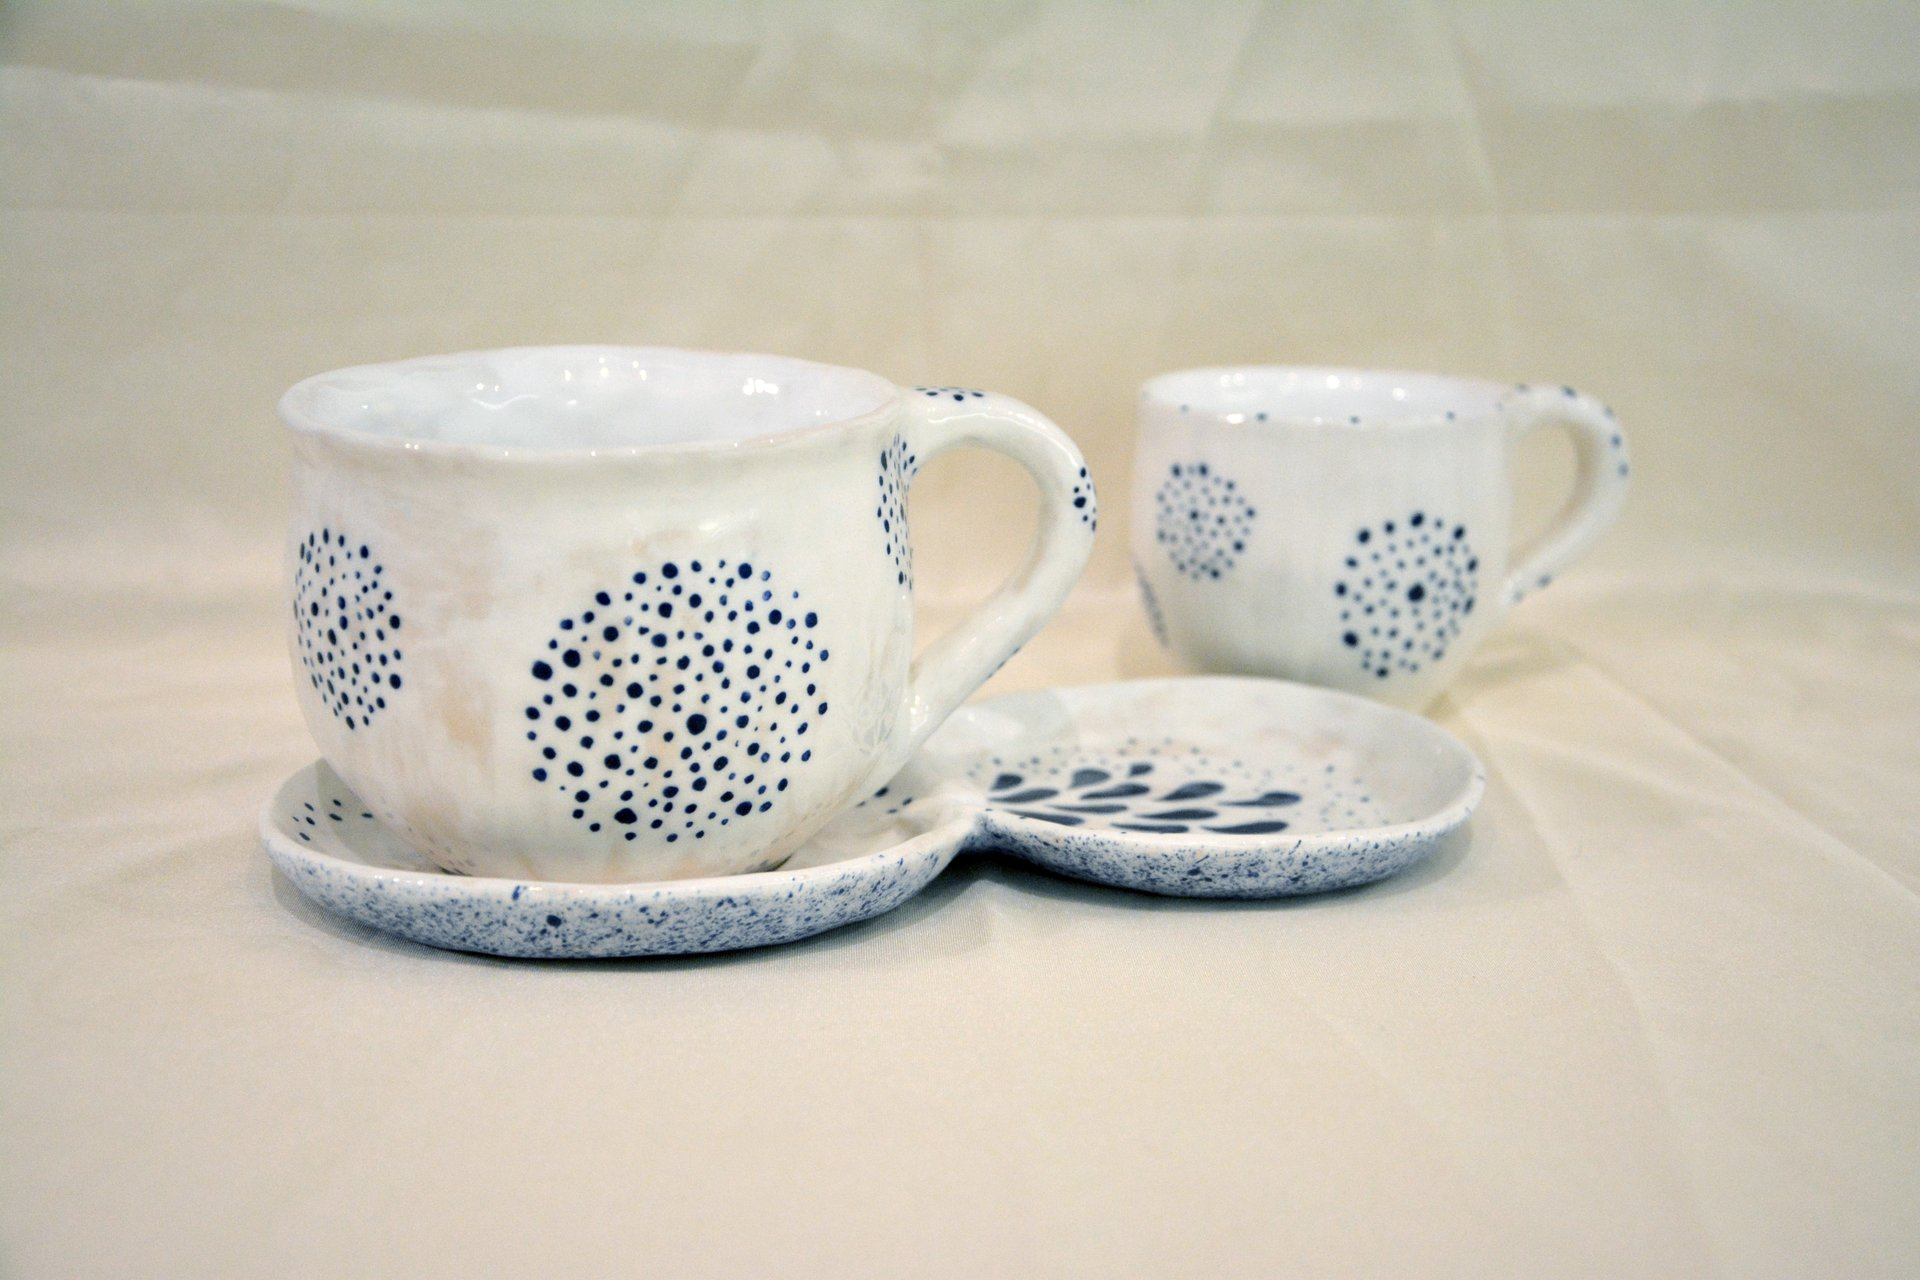 A pair of white cups with a blue Dot-Circle pattern - Cups, glasses, mugs, 300 ml and 200 ml, photo 1 of 4.